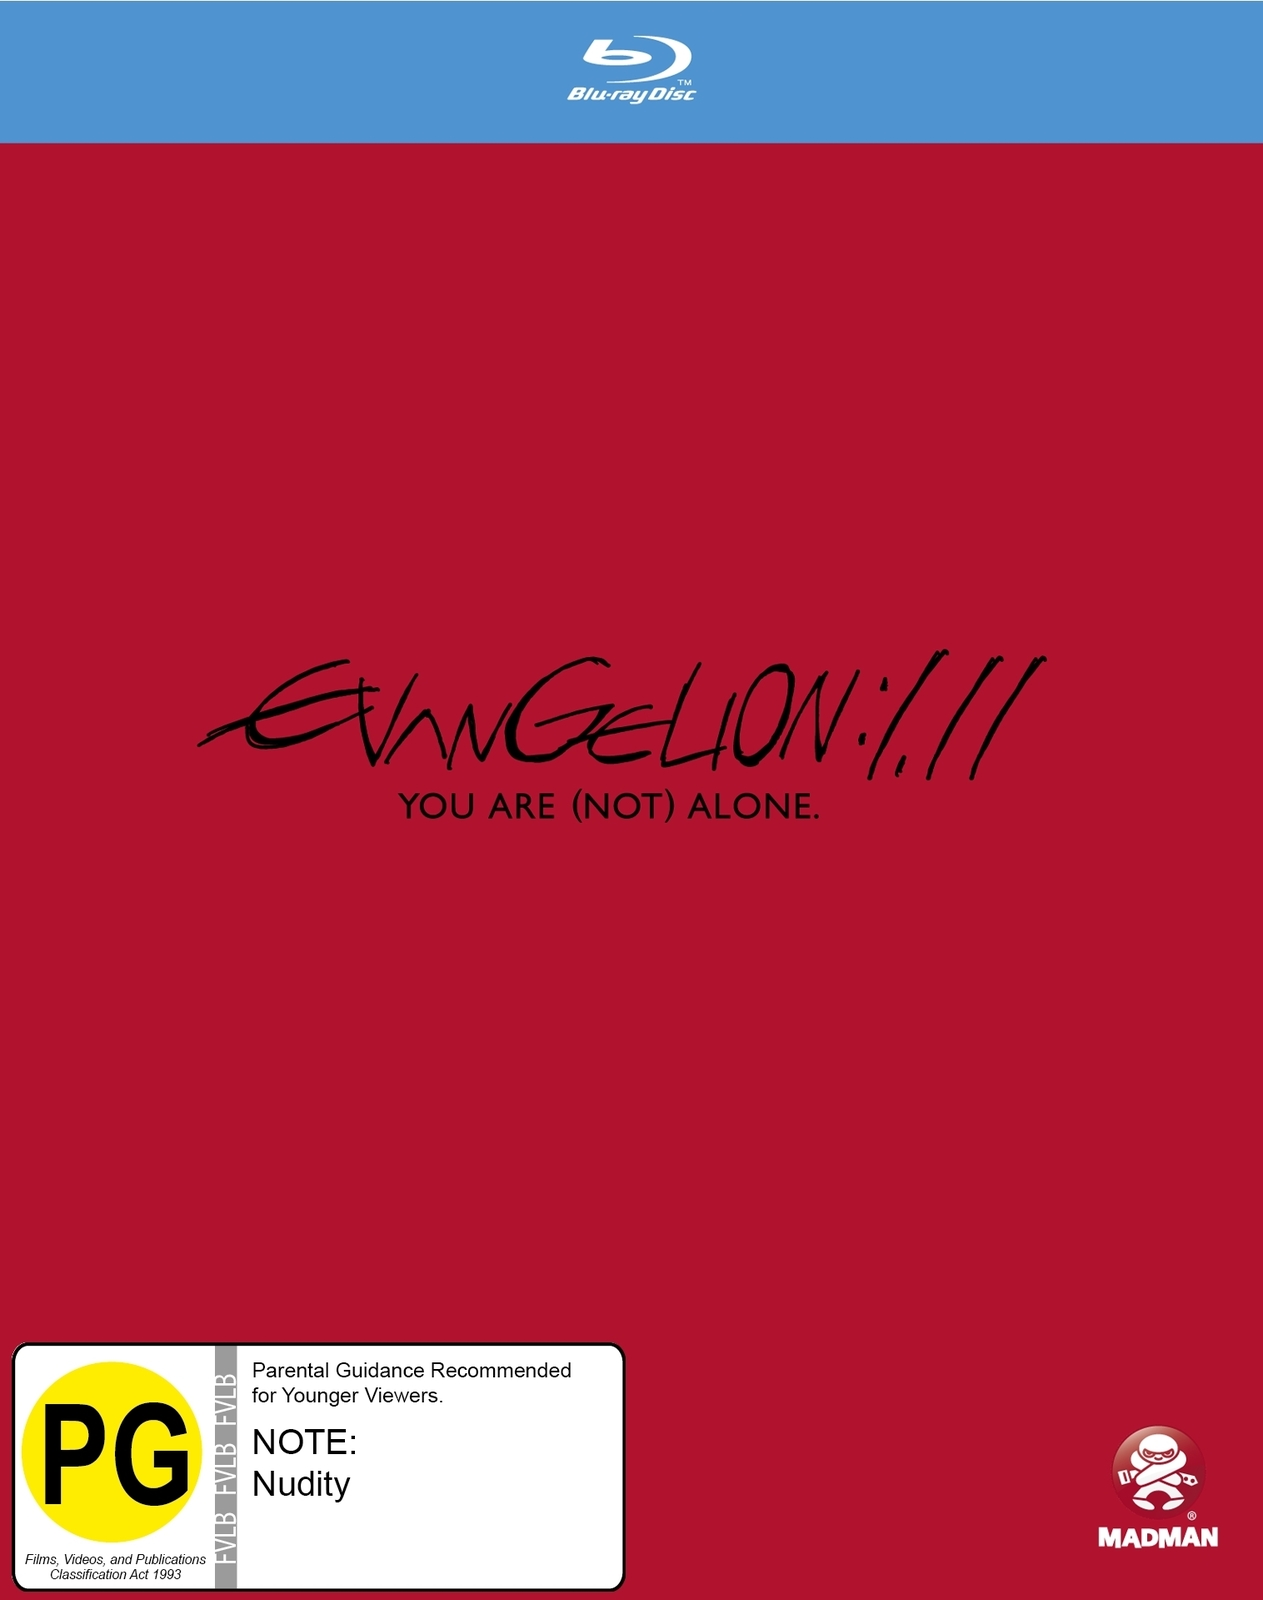 Evangelion: 1.11 You Are (not) Alone [Slipcase Edition] on Blu-ray image